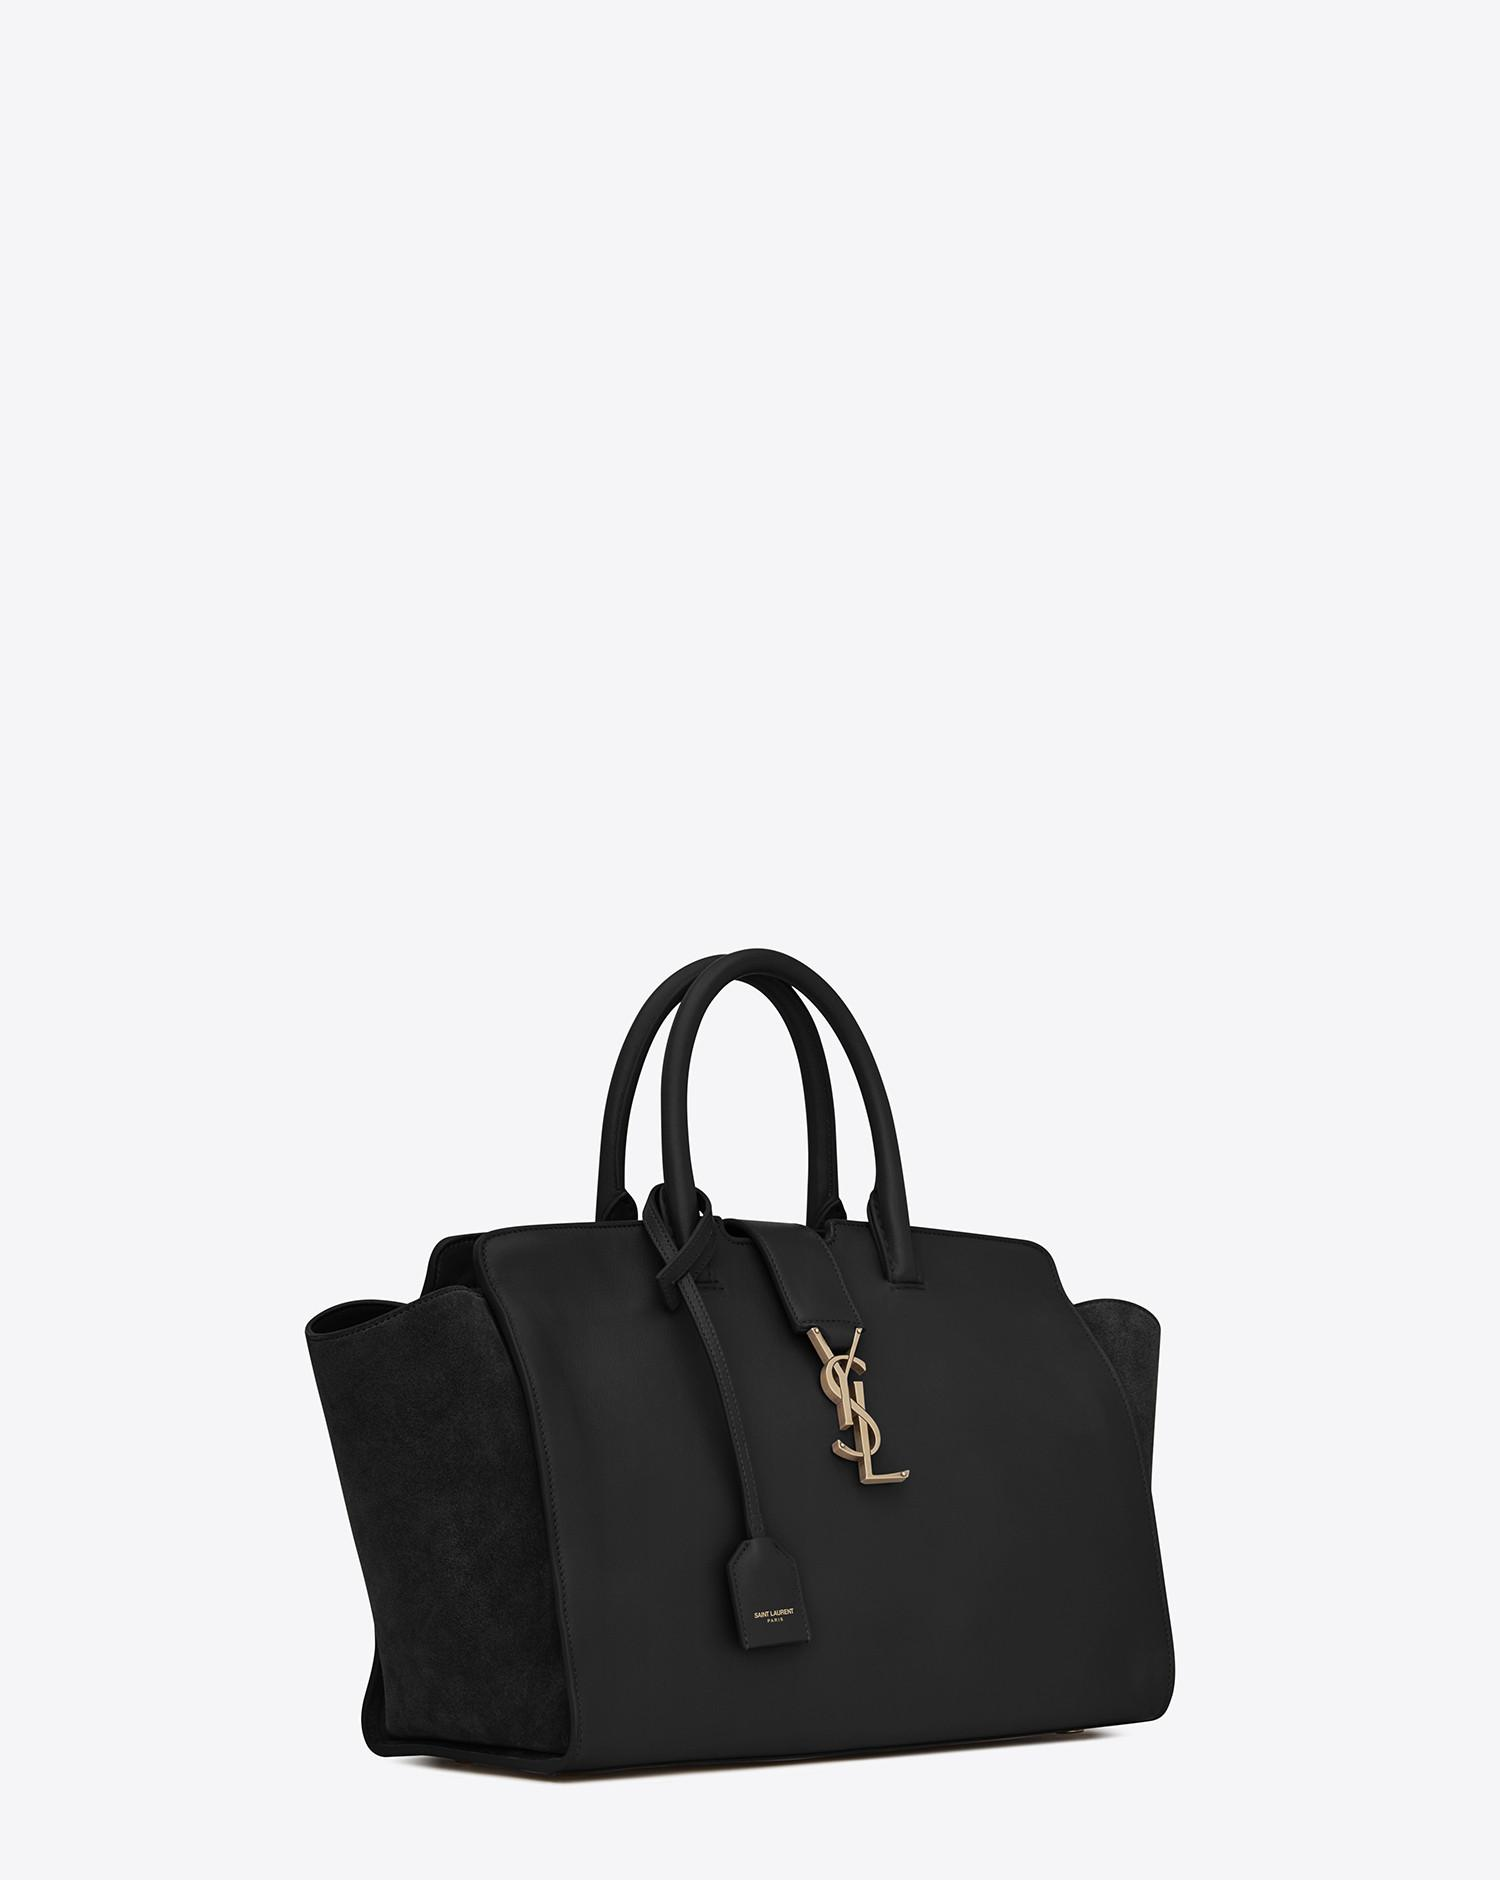 15953c8f3748 Saint Laurent. Women s Black Small Monogram Downtown Cabas Leather And  Suede Tote Bag